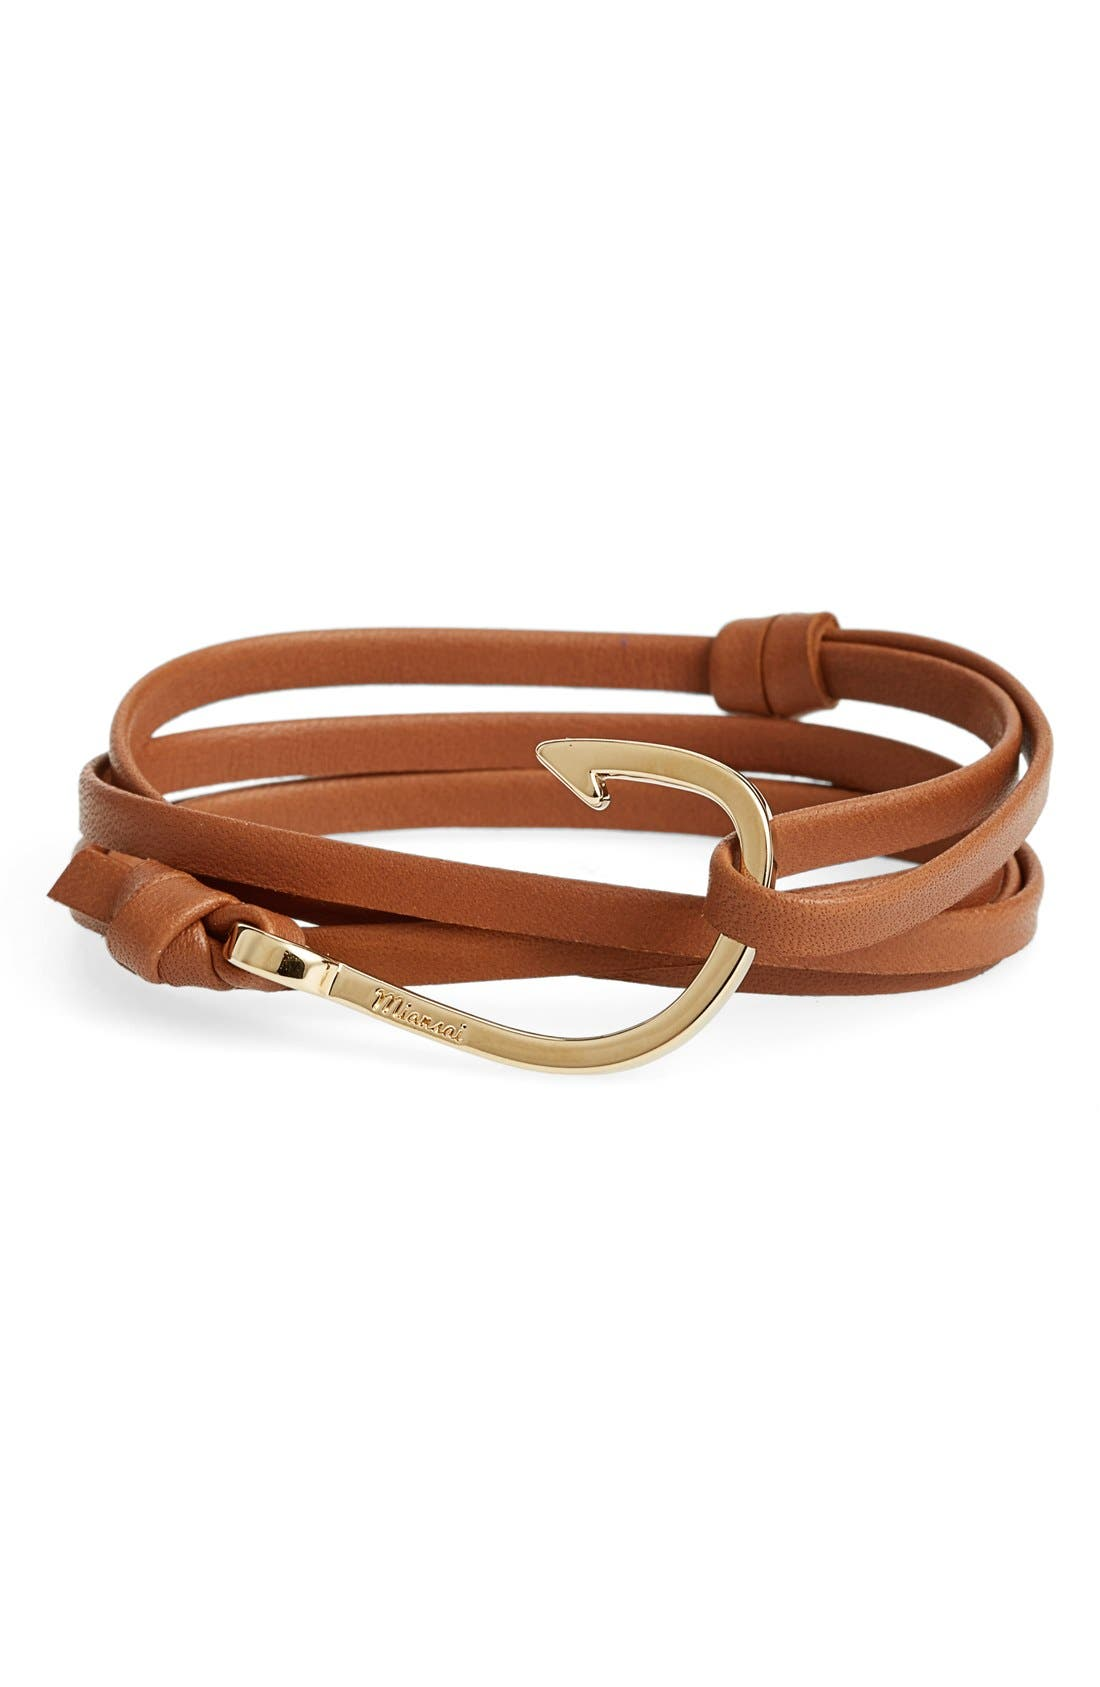 Miansai Gold Hook Leather Bracelet